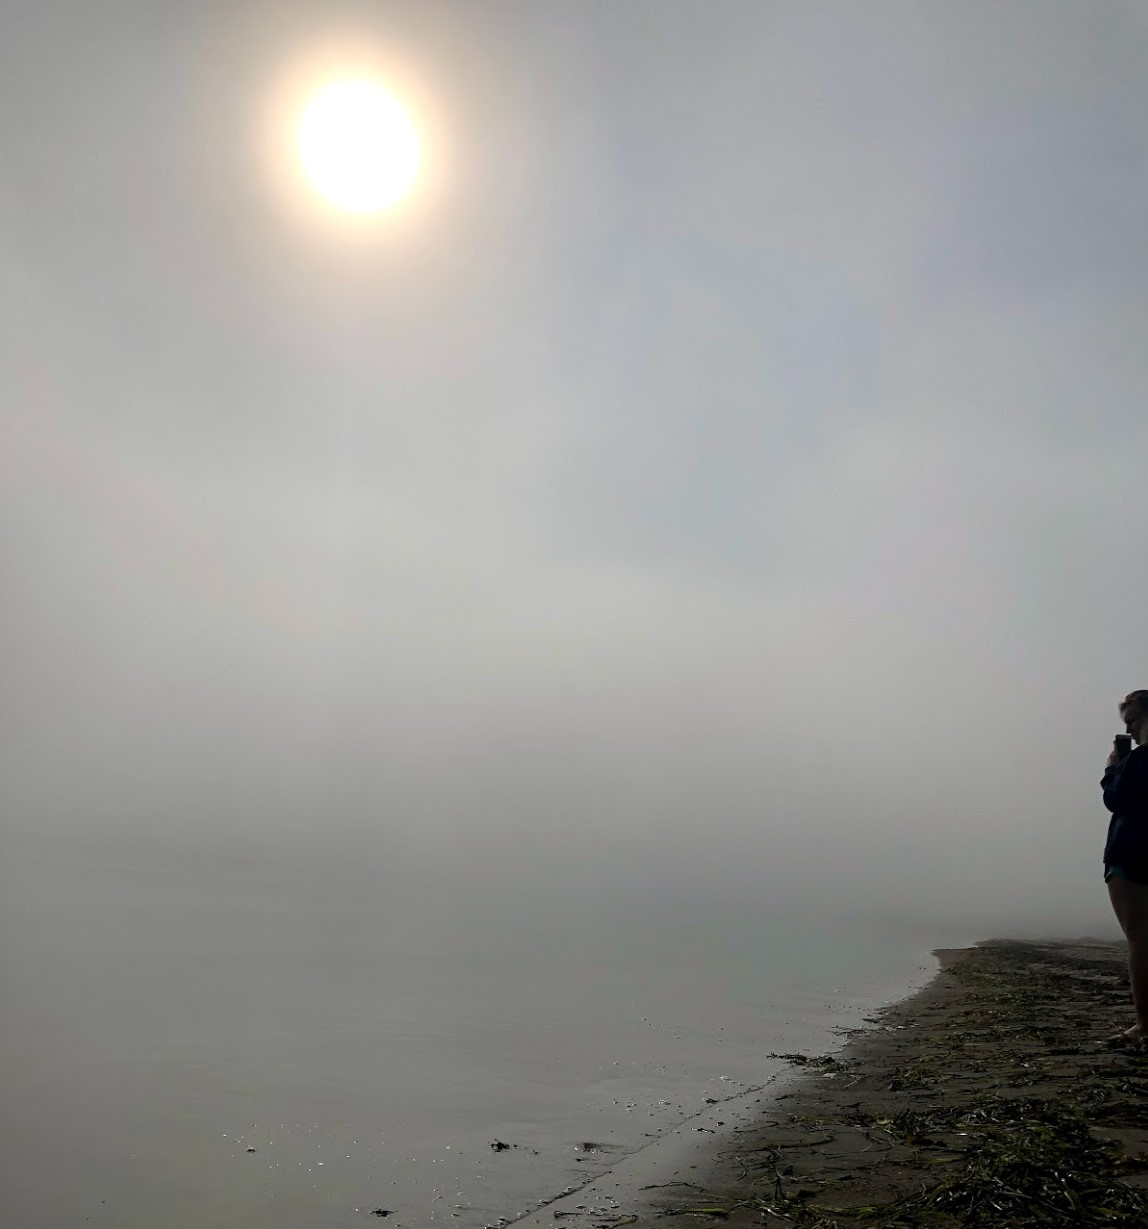 Girl standing in the mist by the shore